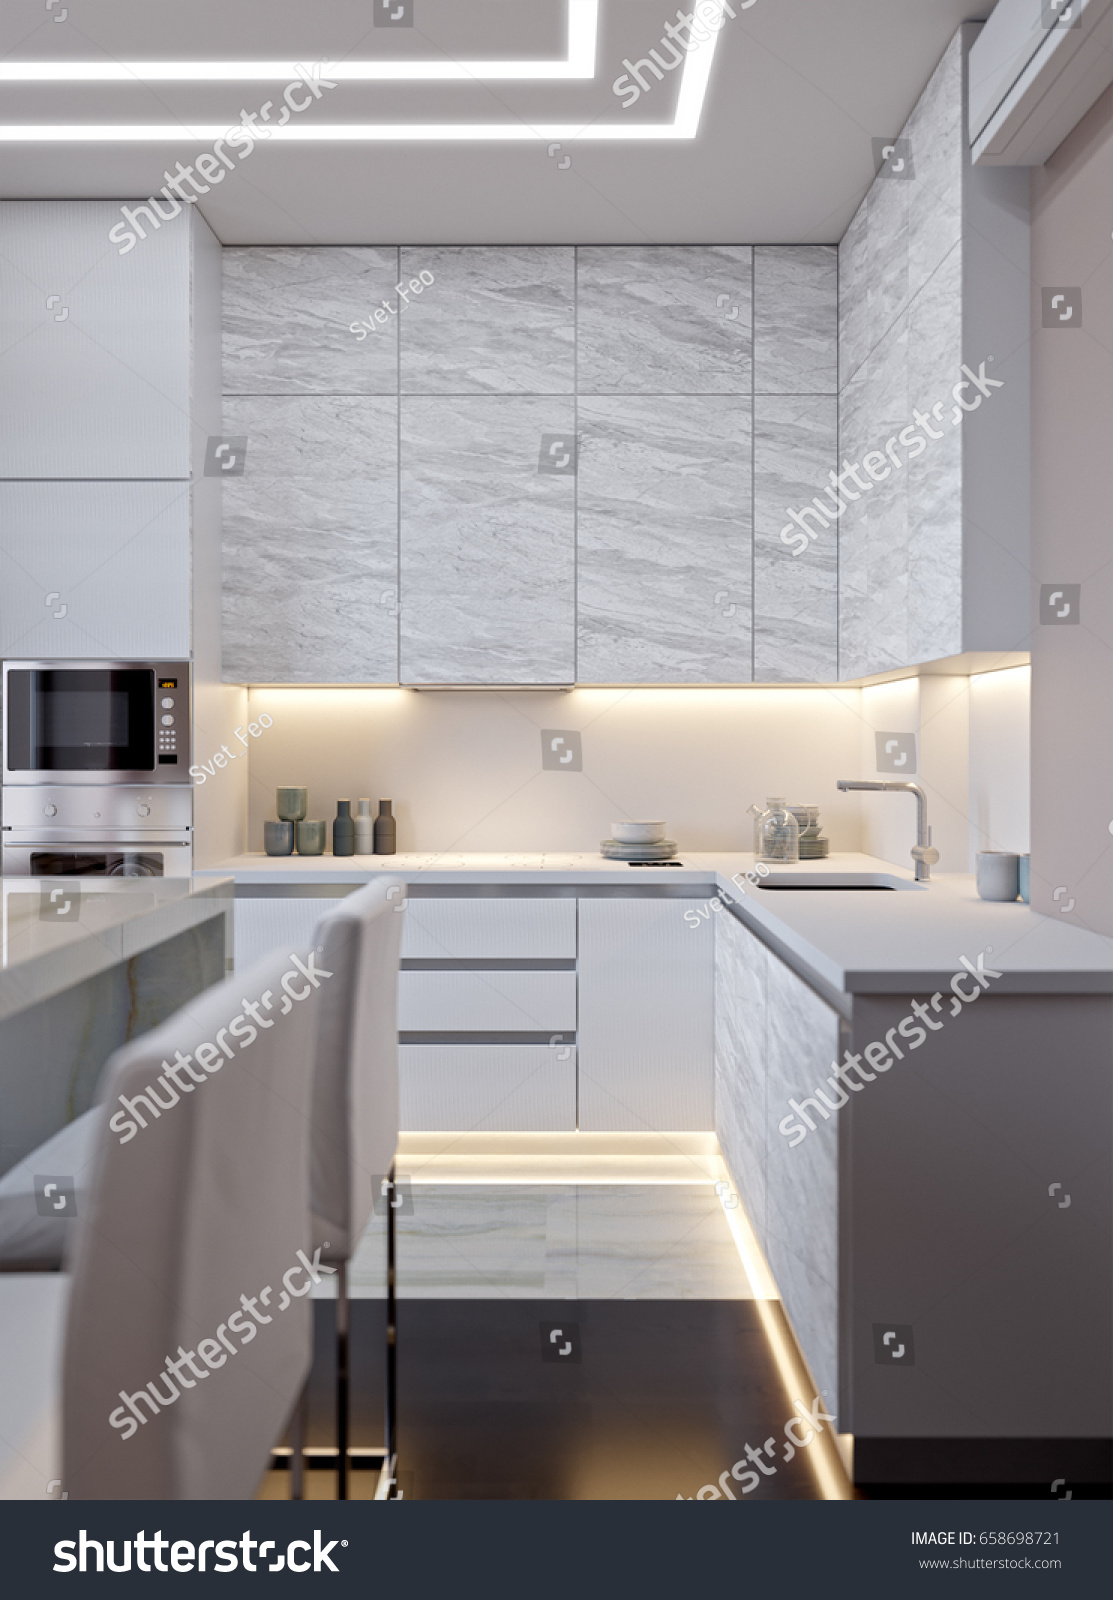 modern white and gray kitchen. Modern Urban Contemporary White Gray Kitchen Stock Illustration 658698721 - Shutterstock And S